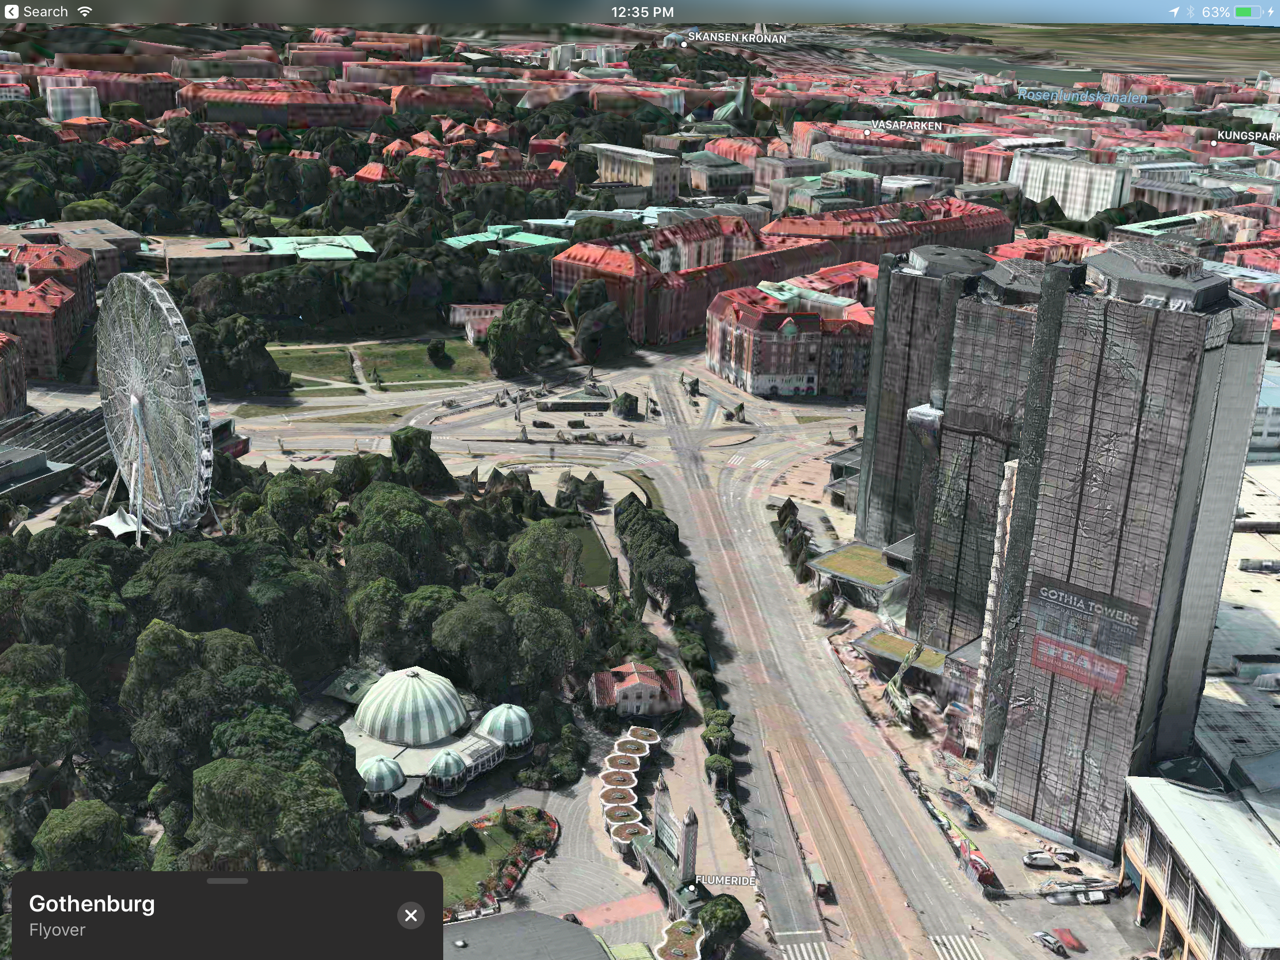 Traveling back to Gothenburg through Apple Map's flyover.